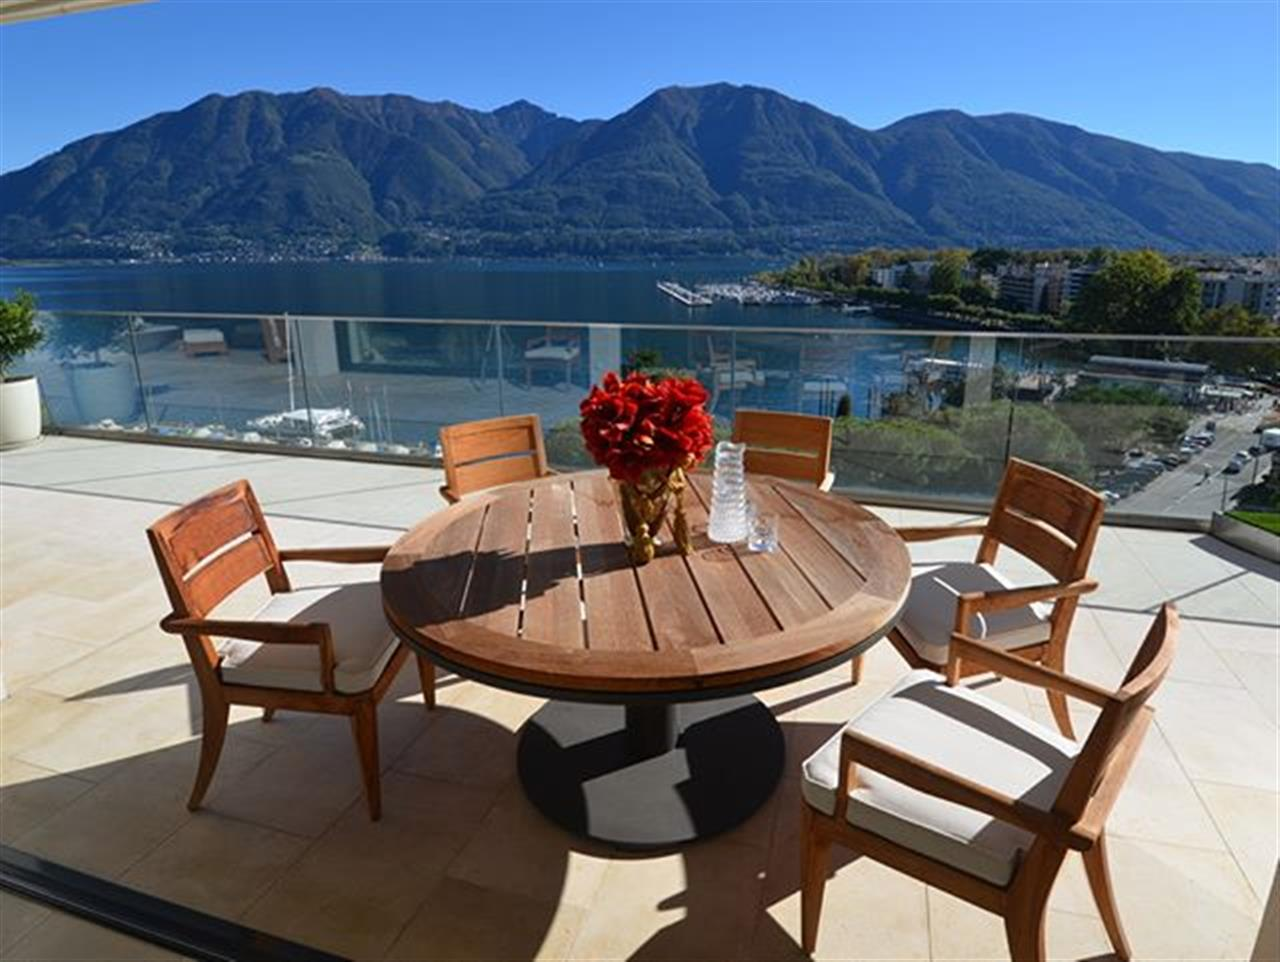 Summer in #Locarno Part III. Large terrace view incredible 180┬░ view to the #Locarno lake shore from one of our modern #apartmentforsale in #Muralto - #Ticino in #Switzerland at #LakeMaggiore - For more search with ref. 88334 or visit bit.ly/88334-en #luxuryrealestate #inlovewithswitzerland #luxurylife #luxurylifestyle #christiesinternationalrealestate #luxuryportfolio #wetagconsulting #leadingre #ChristiesHomes #LeadingRElocal